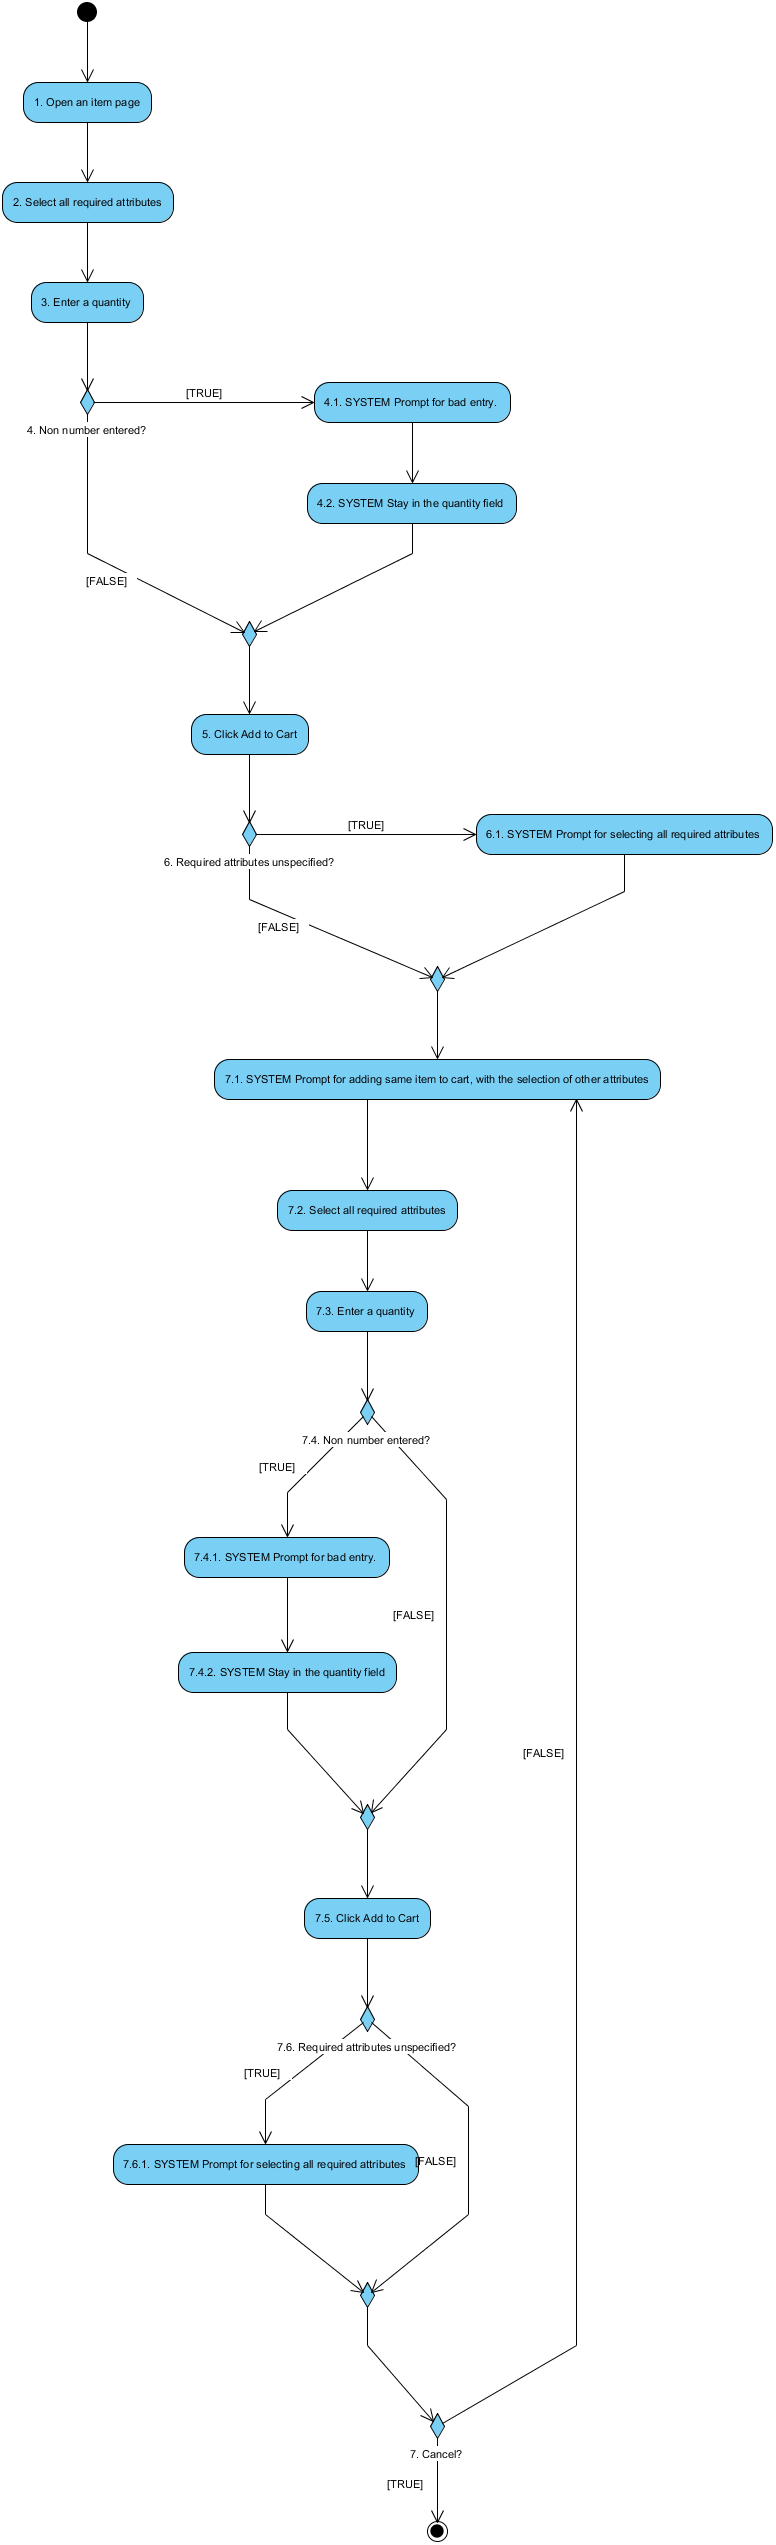 Uml activity diagram example for an online grocery store this uml activity diagram example for an online grocery store this activity diagram example is brought to you by the uml tool provided by visual paradigm ccuart Image collections